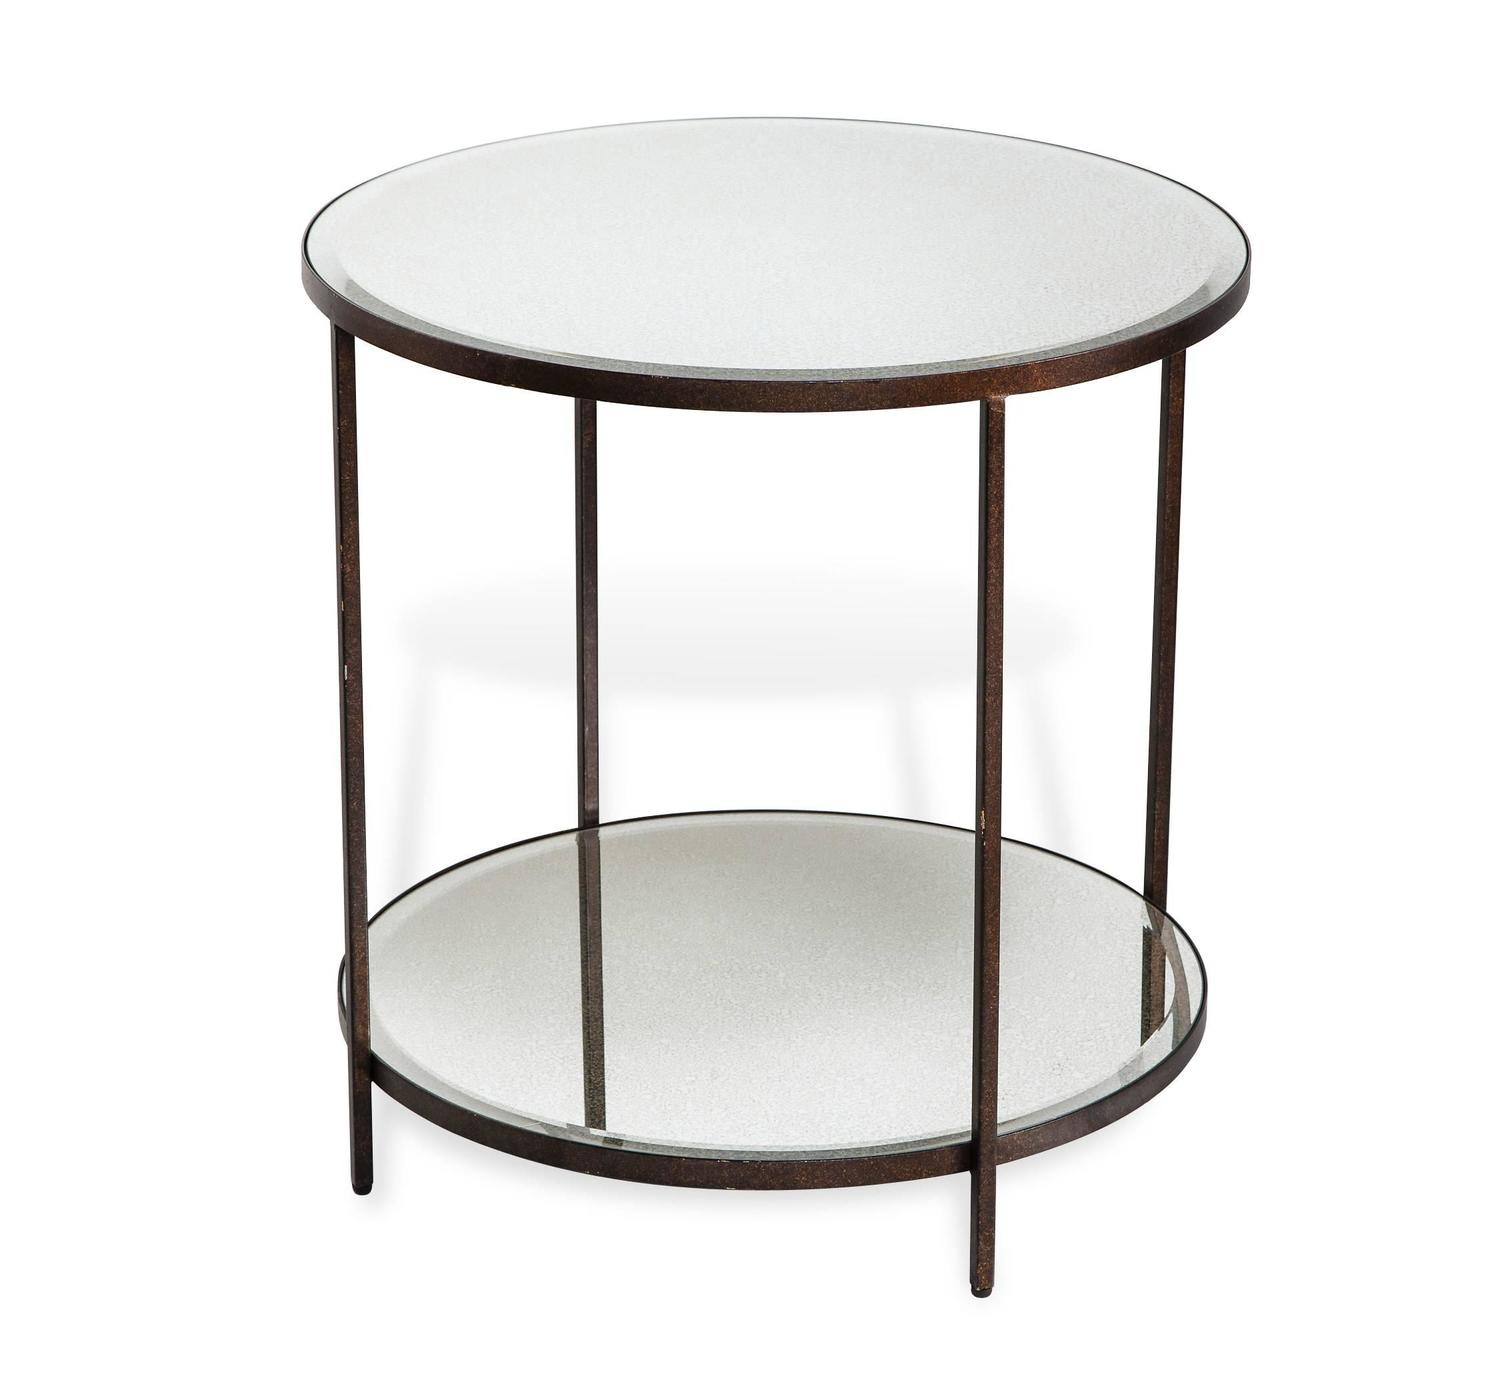 Round Side Table For Sale At 1stdibs